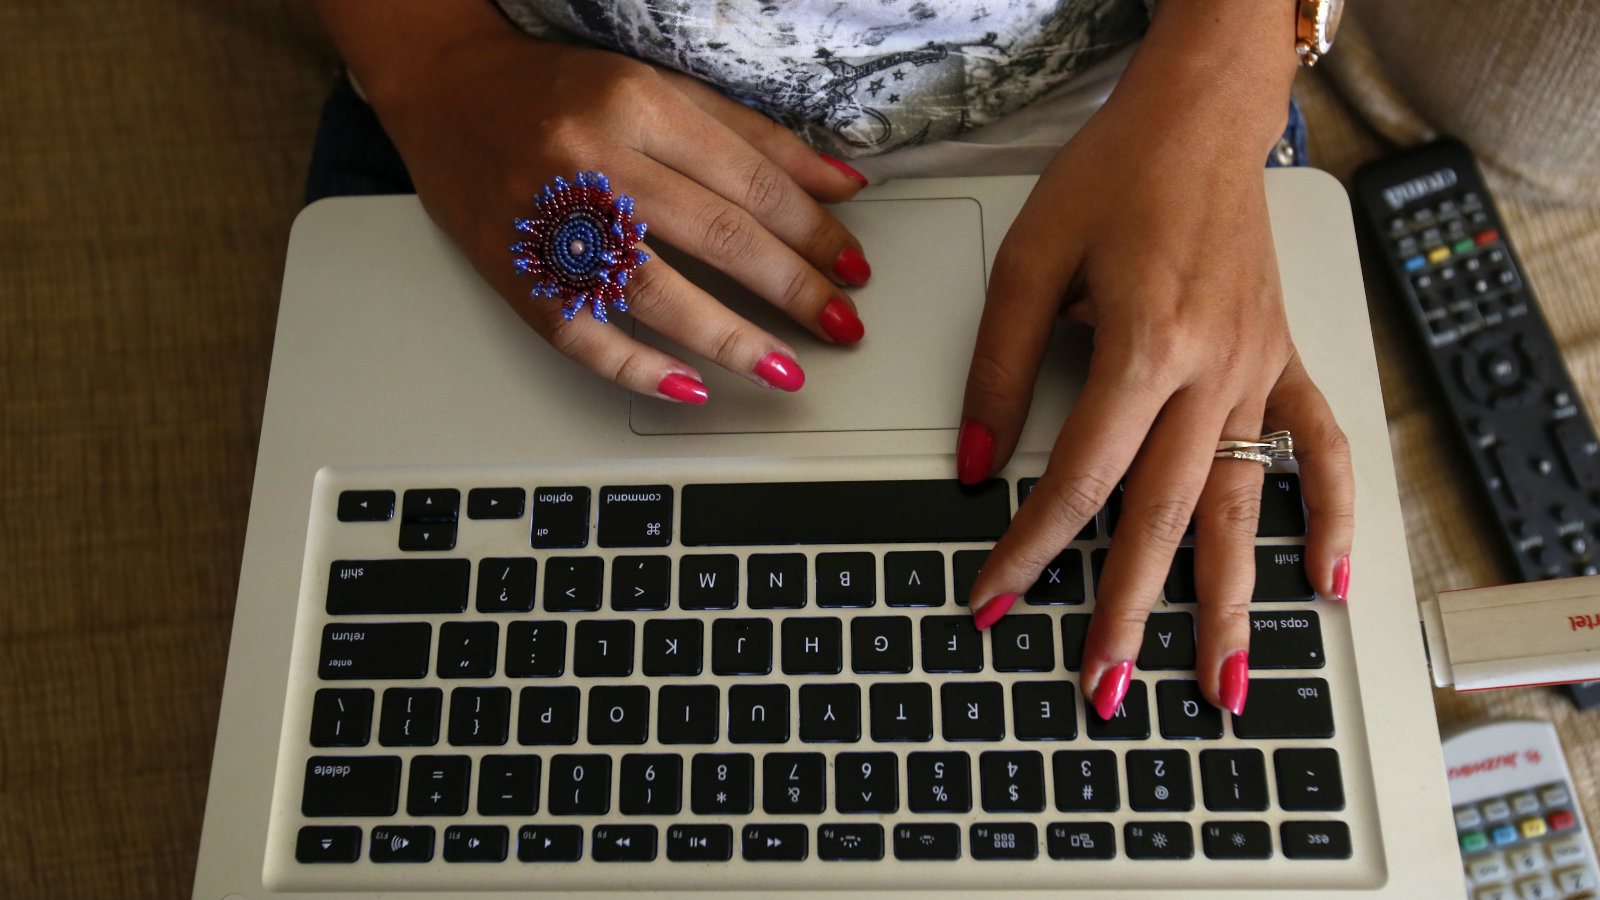 """The hands of Malini Agarwal, blogger-in-chief of missmalini.com, are pictured as she blogs from her living room in Mumbai, January 22, 2013. Agarwal, 35, exemplifies what aspirational India is all about - She's bubbly, energetic, and describes herself as """"India's blogging princess"""" and a """"social media Jedi"""". She's been called """"without a doubt, India's most famous blogger"""". Her blog, missmalini.com, gets over 250,000 unique visitors a month. It provides a steady diet of Bollywood gossip, fashion, food and entertainment to a legion of followers."""